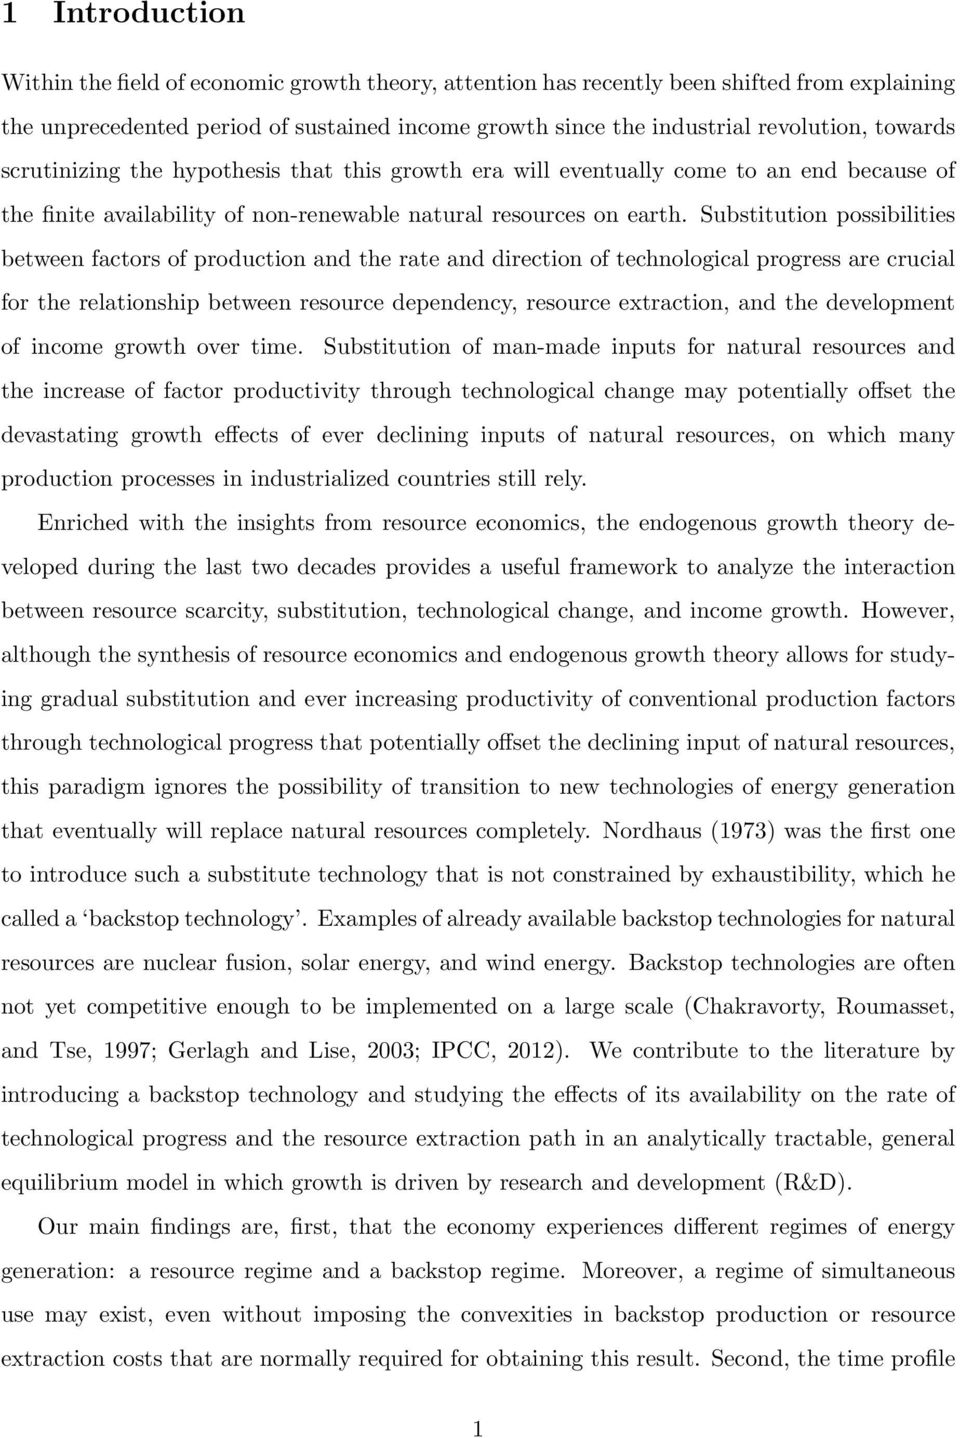 Substitution possibilities between factors of production and the rate and direction of technological progress are crucial for the relationship between resource dependency, resource extraction, and